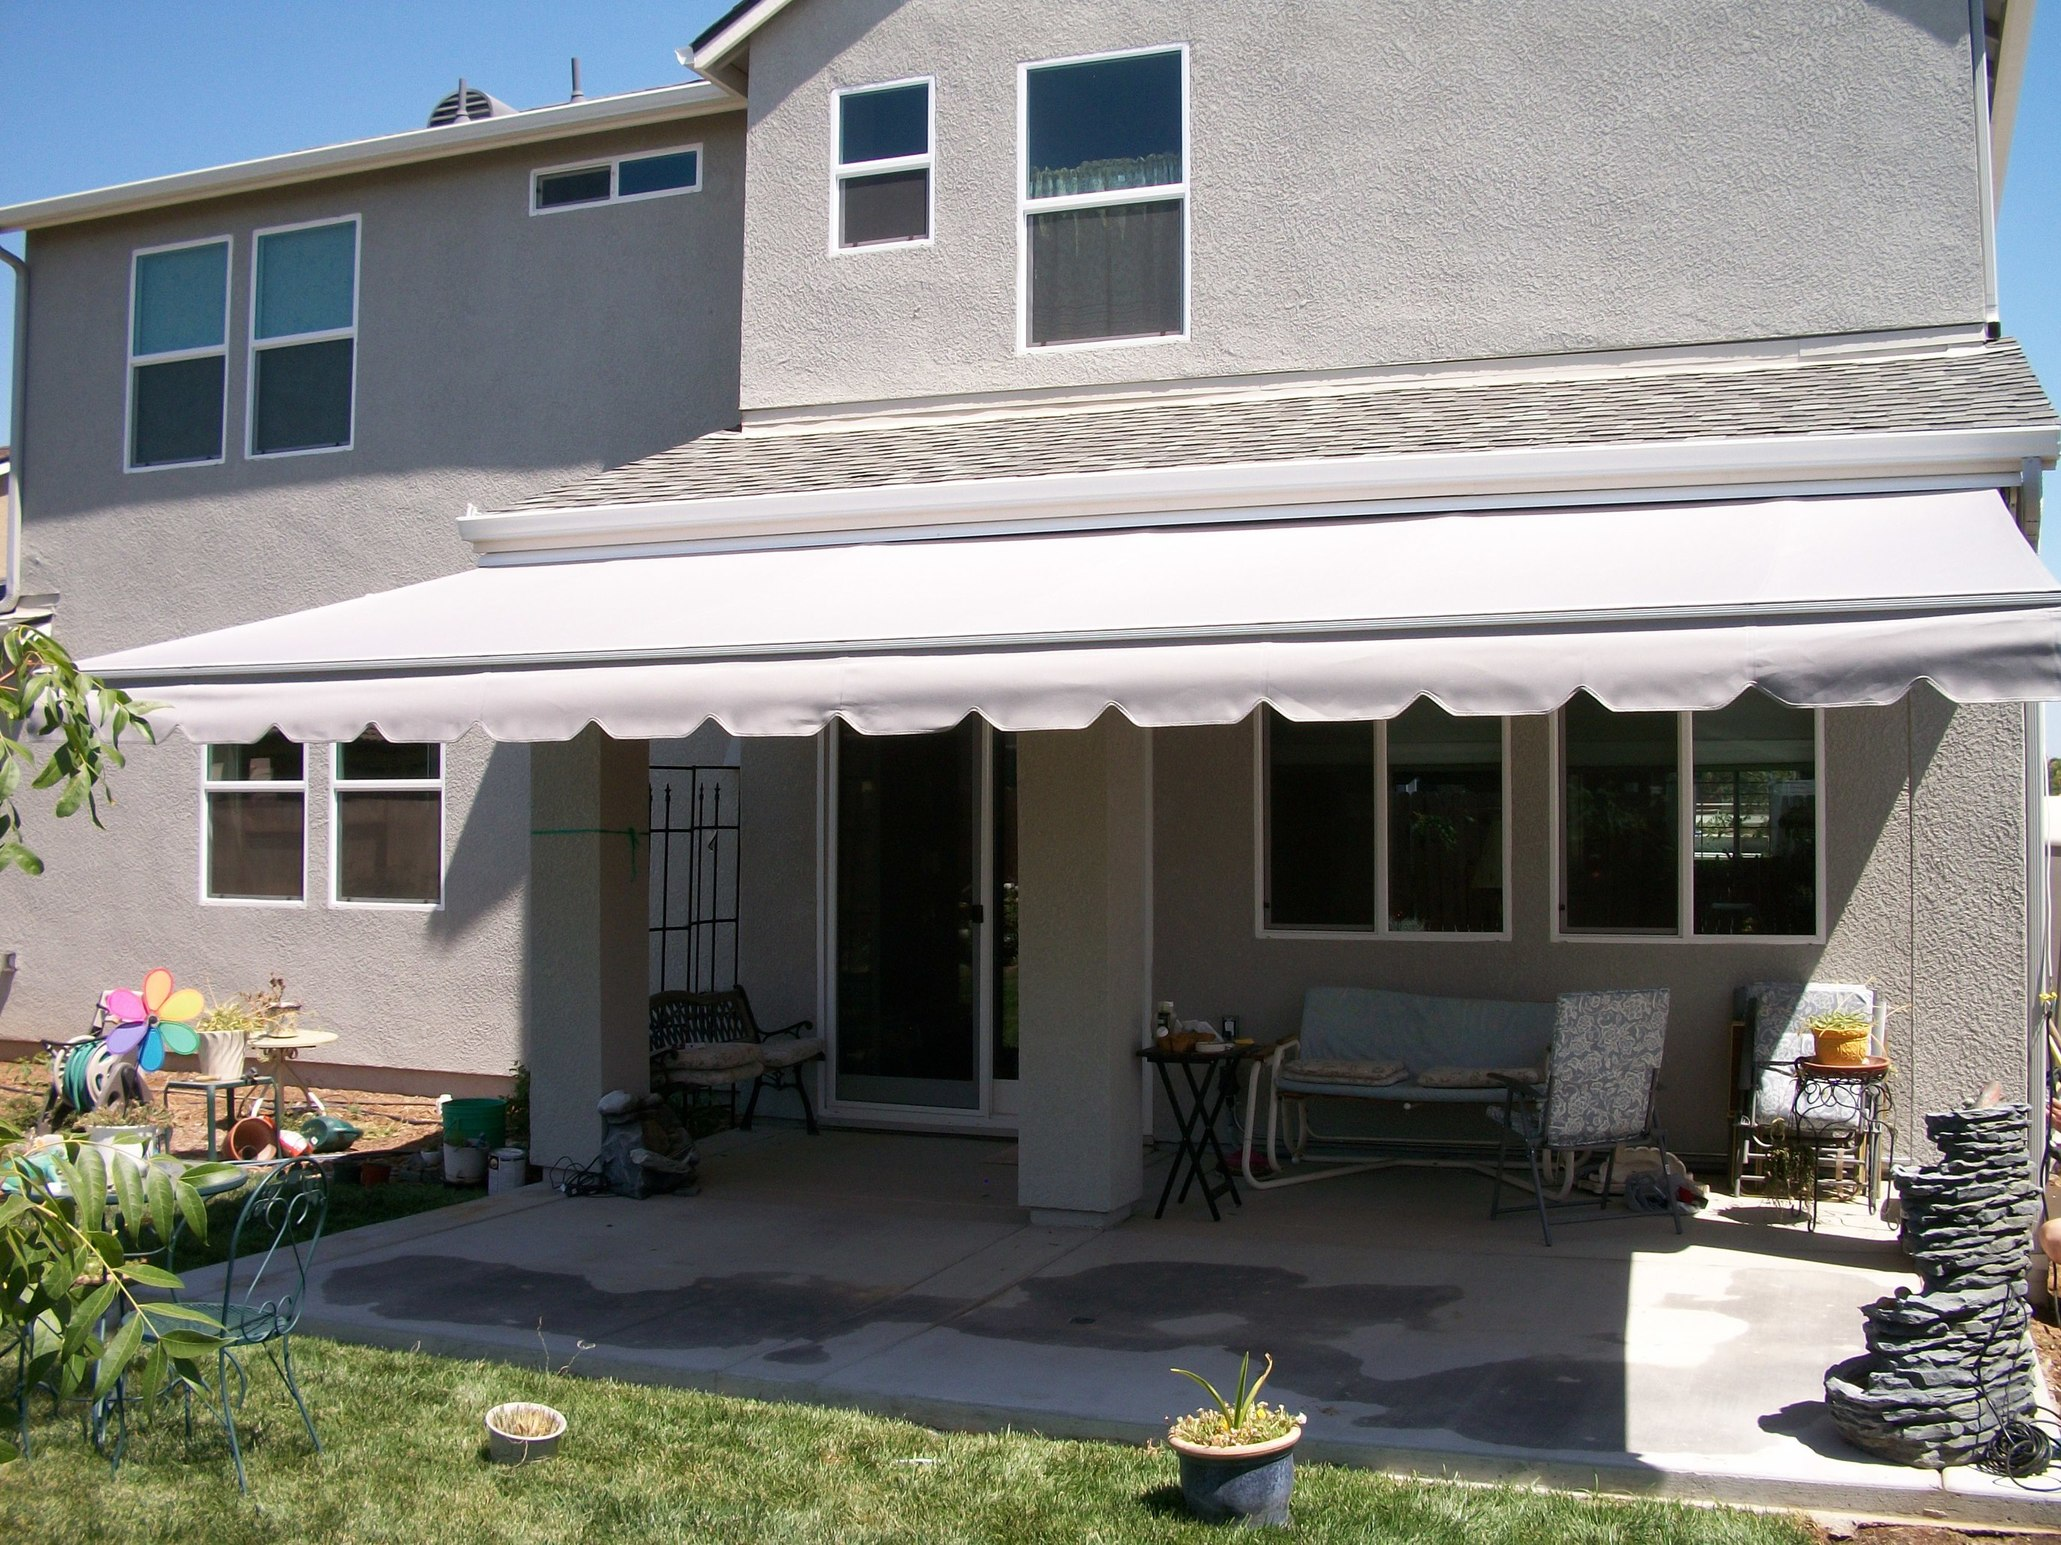 patio rolux garden ltd sun for house cream green stripe awnings awning domestic uk gallery